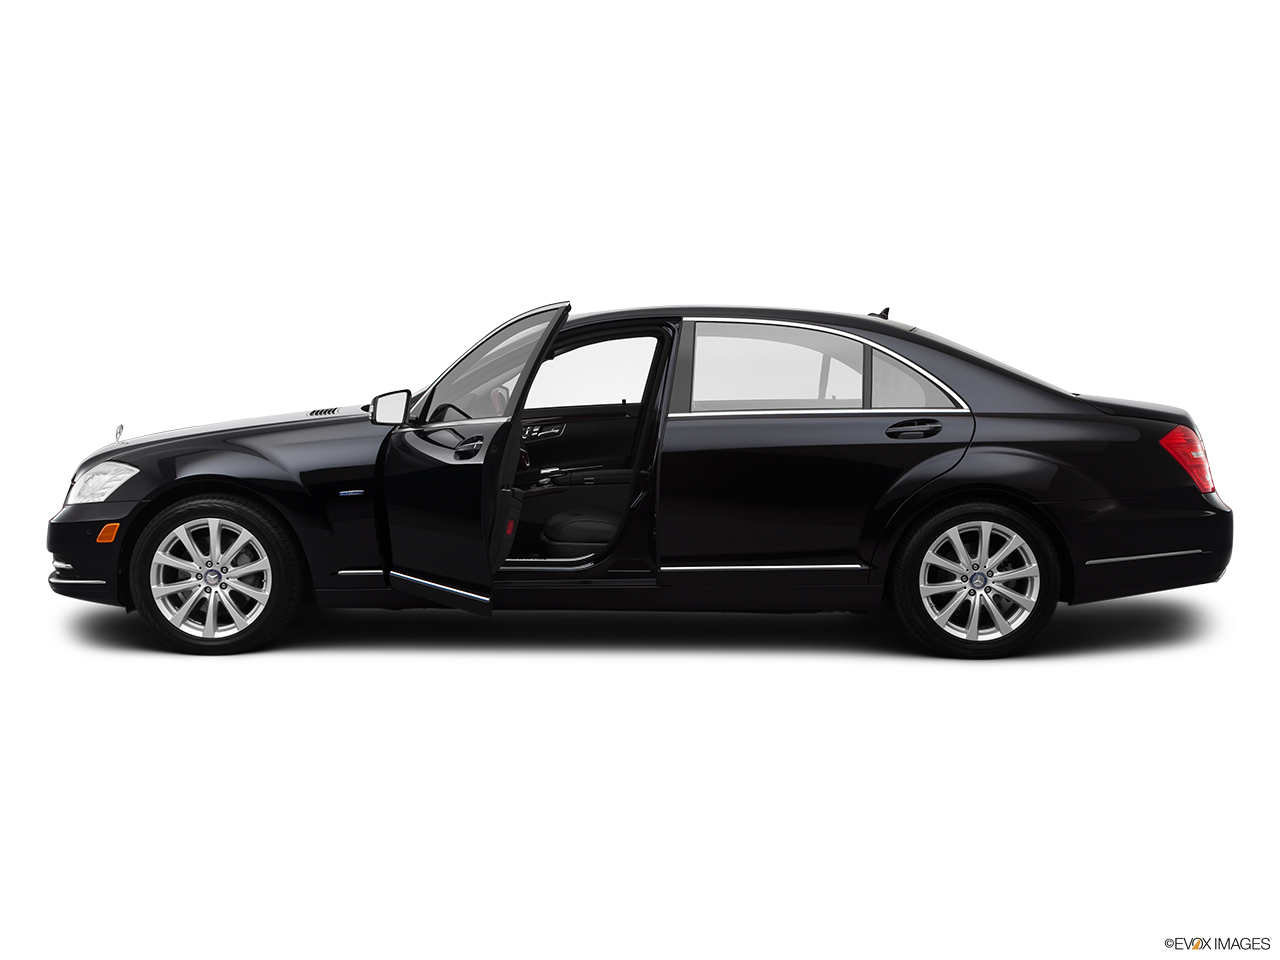 2012 Mercedes-Benz S-Class Hybrid S400 Driver's side profile with drivers side door open.